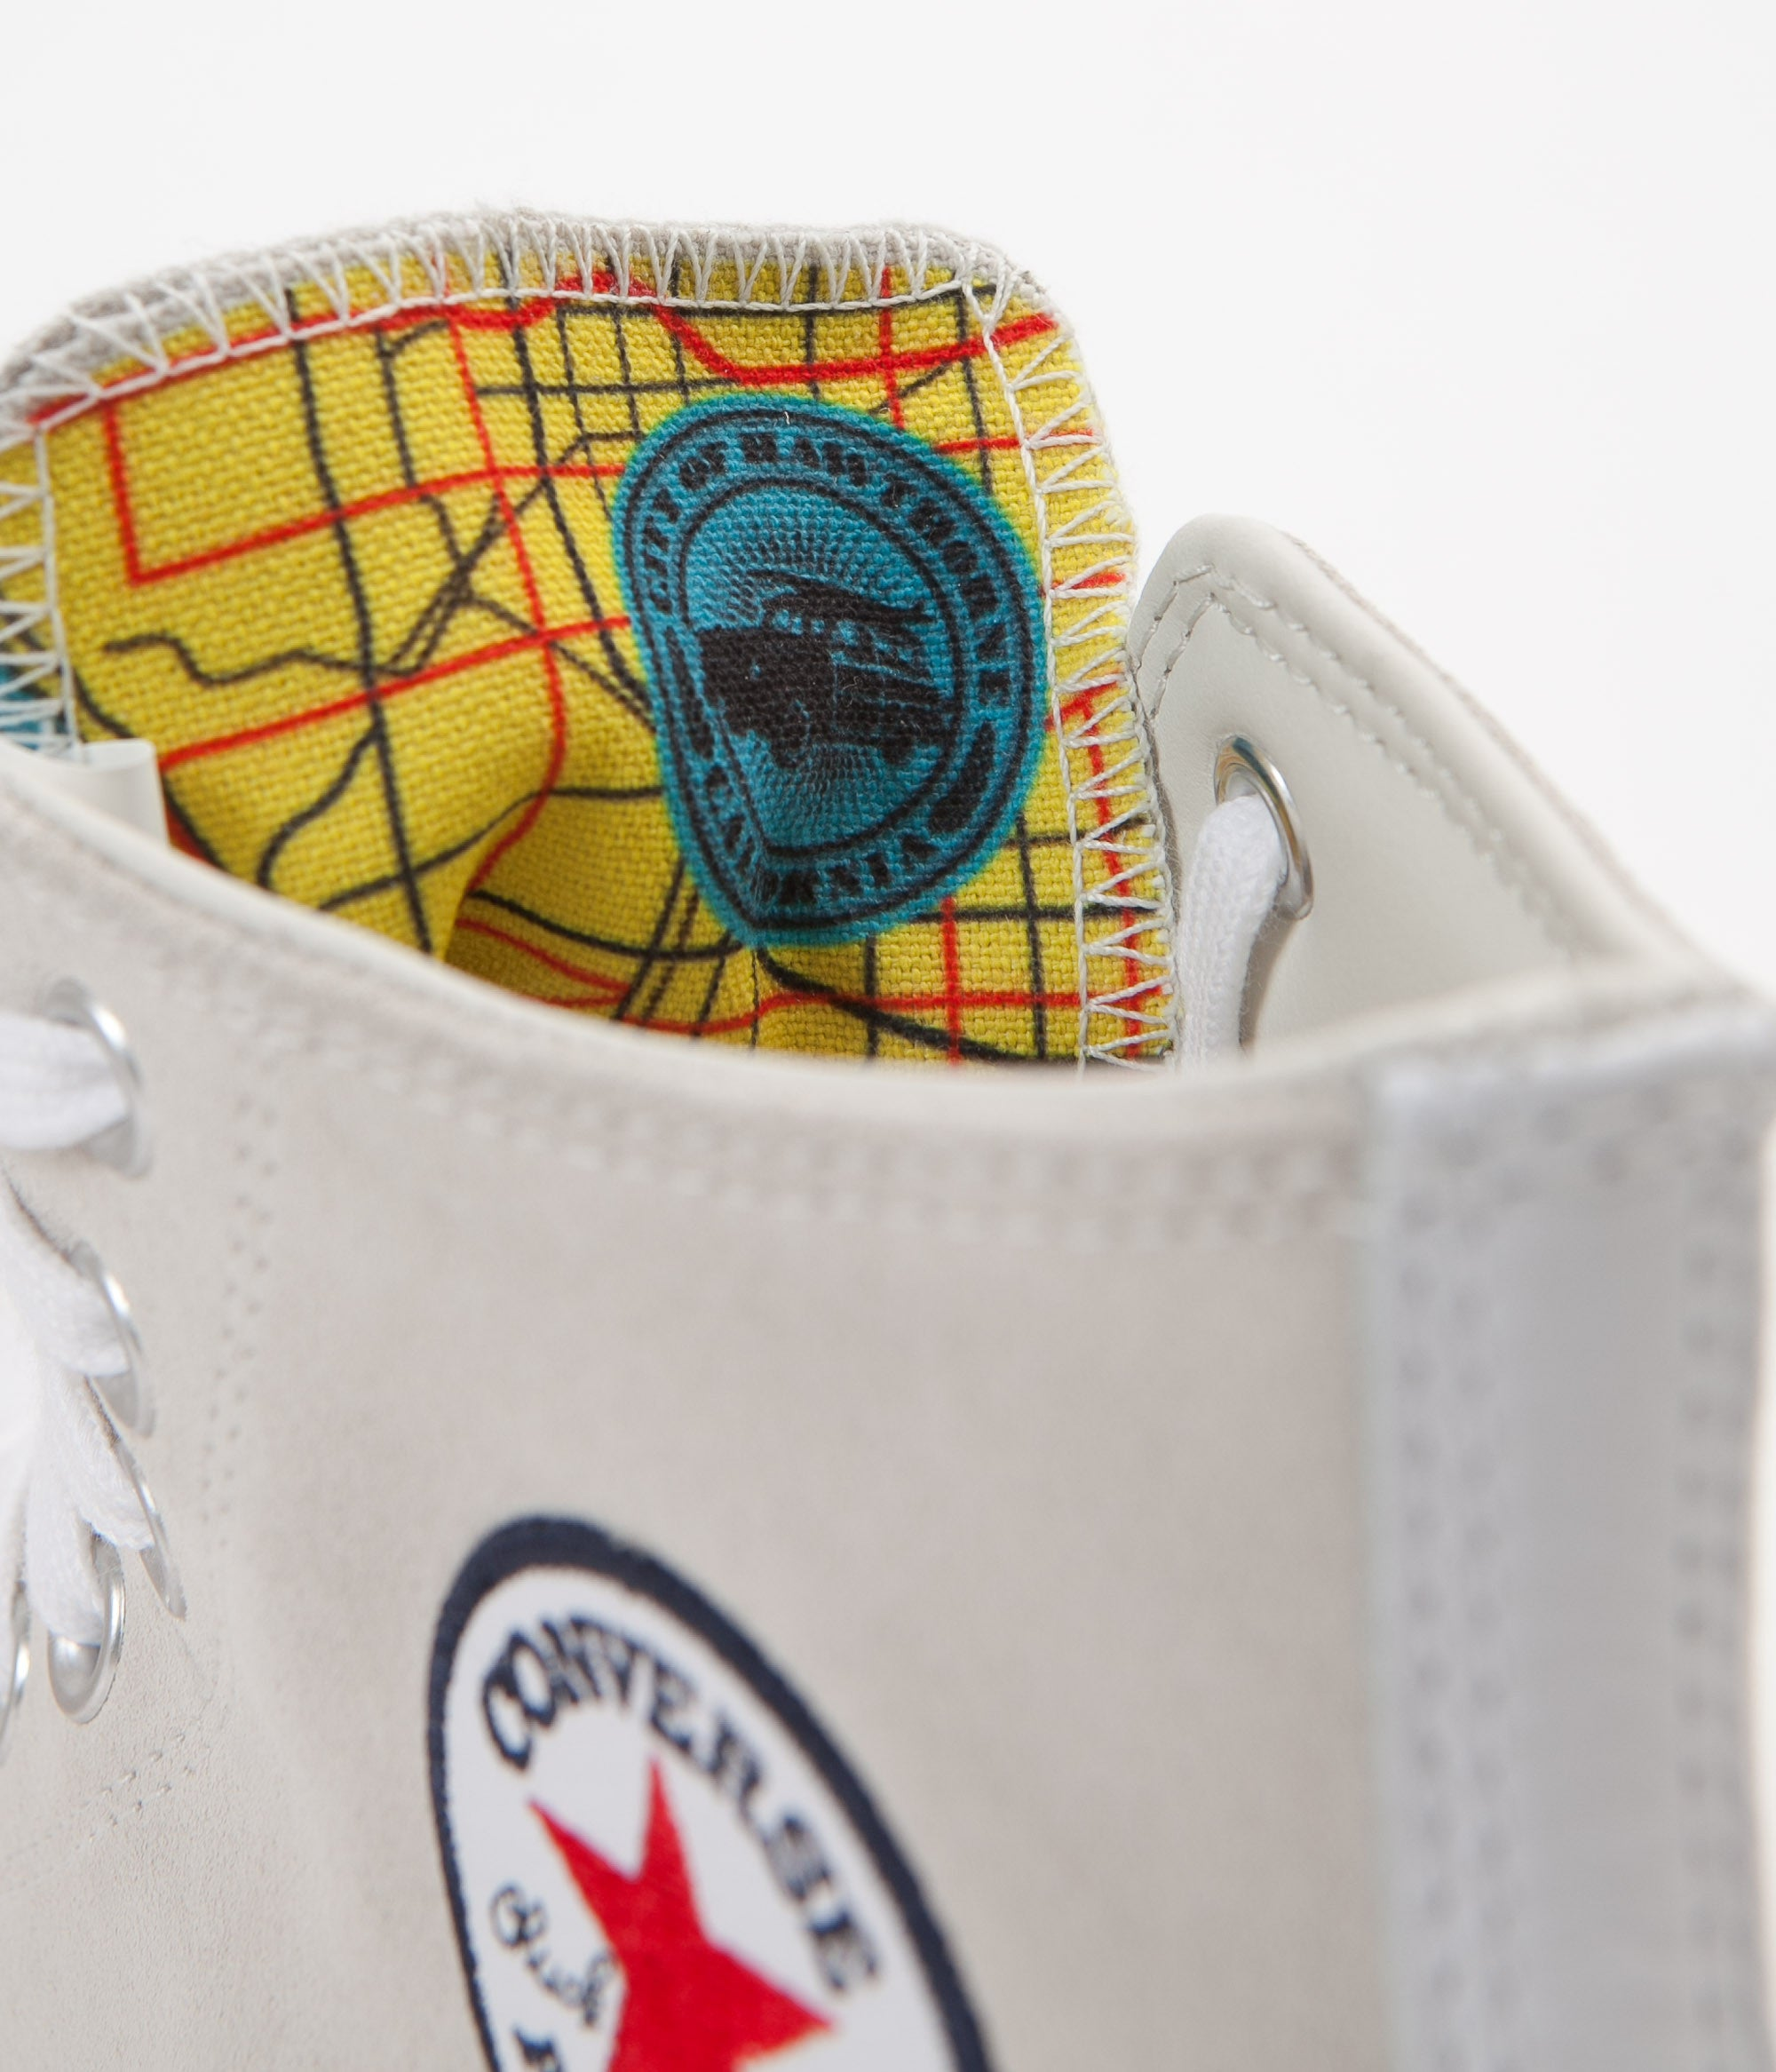 Converse CTAS Pro Hi Louie Lopez Shoes - Buff / White / Casino